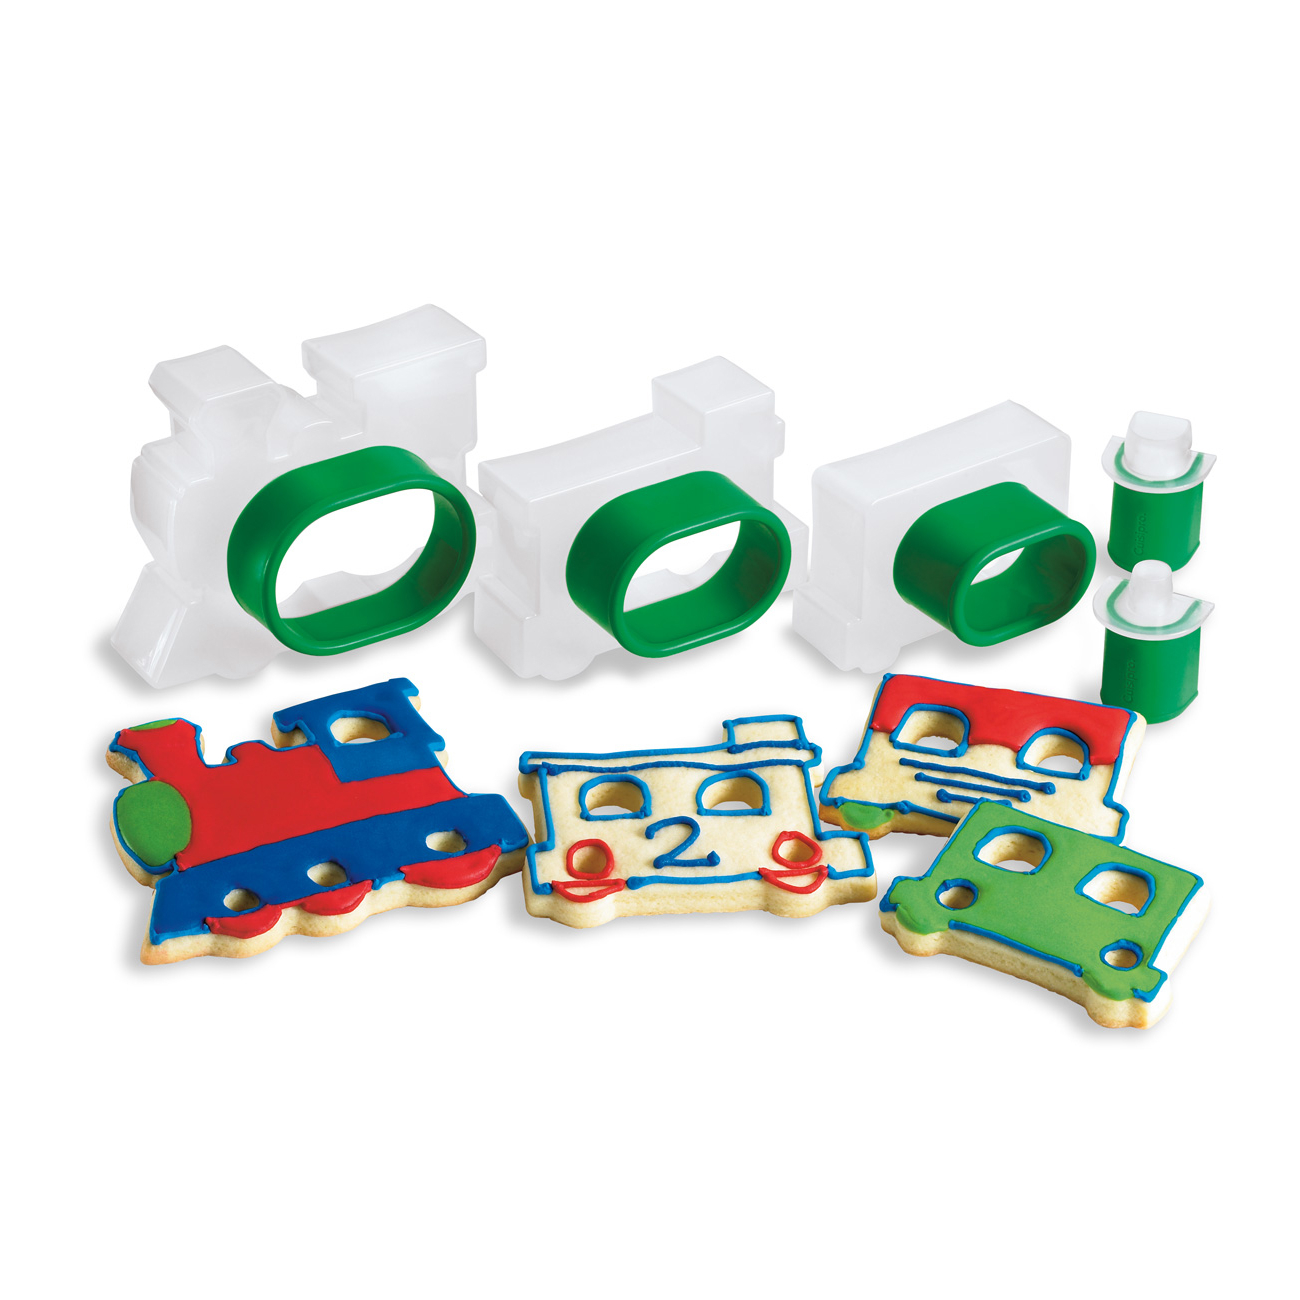 Cuisipro Snap-Fit Green Train Shapes Cookie Cutter Set